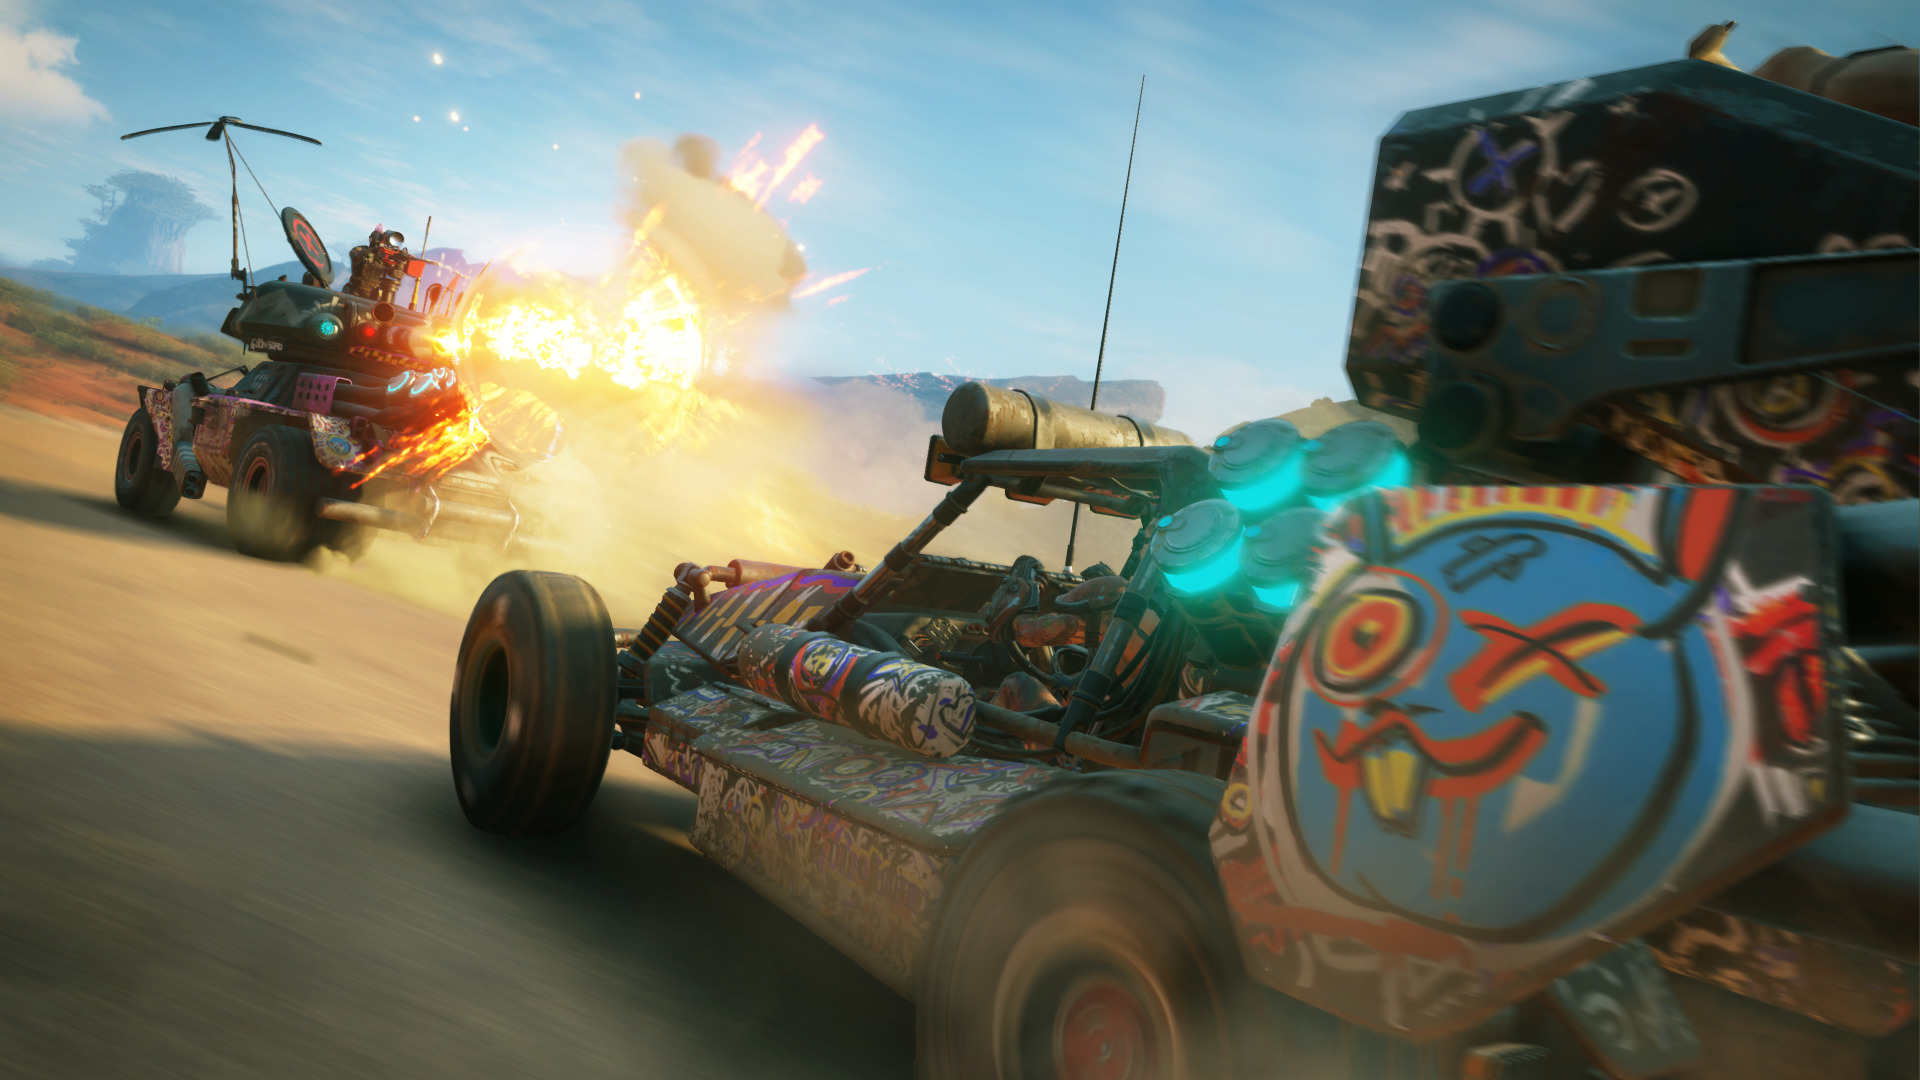 rage 2 game wallpaper 67455